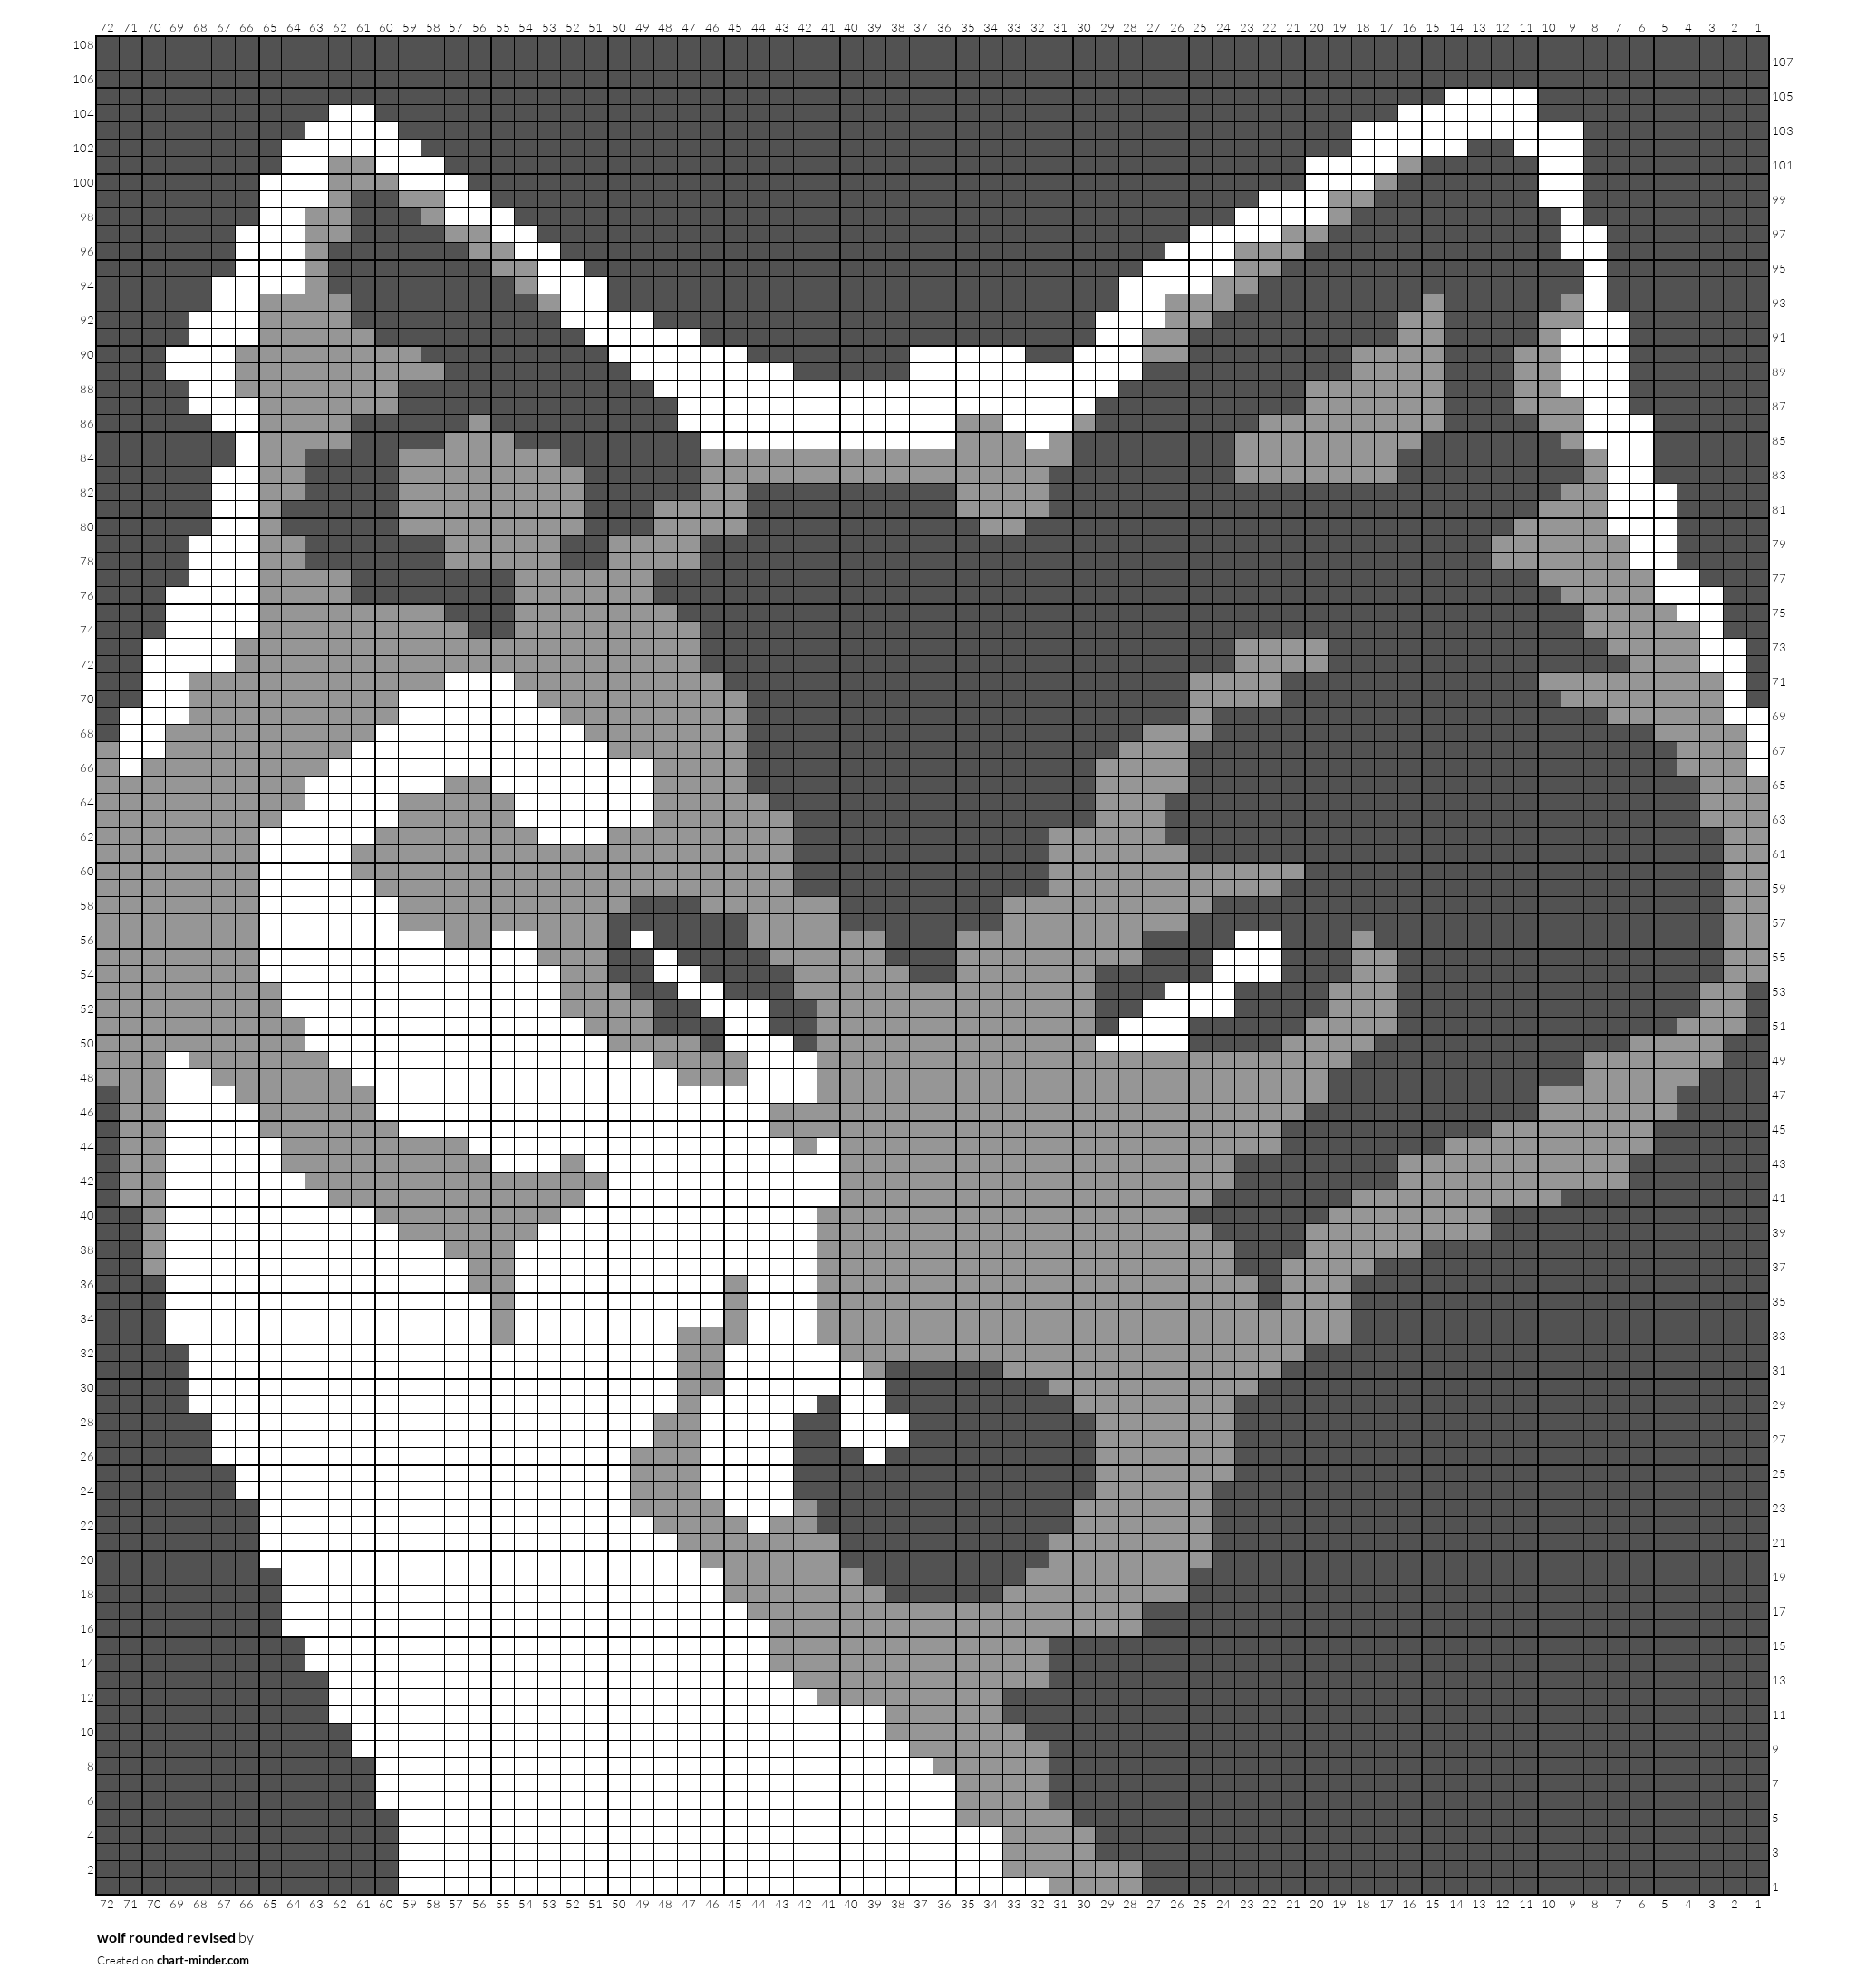 wolf rounded revised